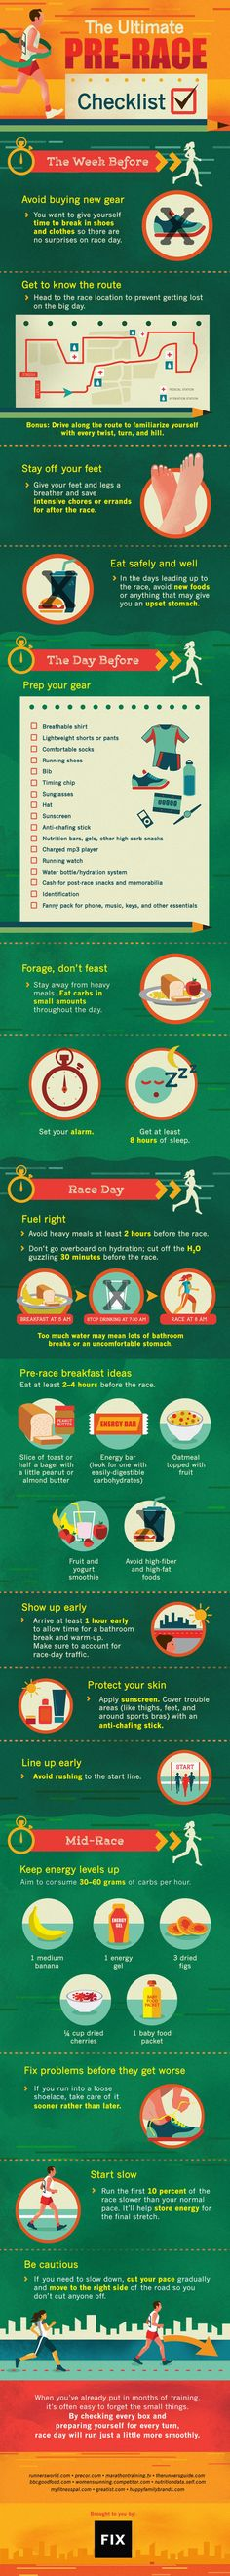 Half marathon training The Ultimate Pre-Race Checklist Infographic Marathon Tips, Half Marathon Training, Marathon Running, Disney Marathon, Marathon Motivation, Running Motivation, Health Motivation, Keep Running, Running Tips